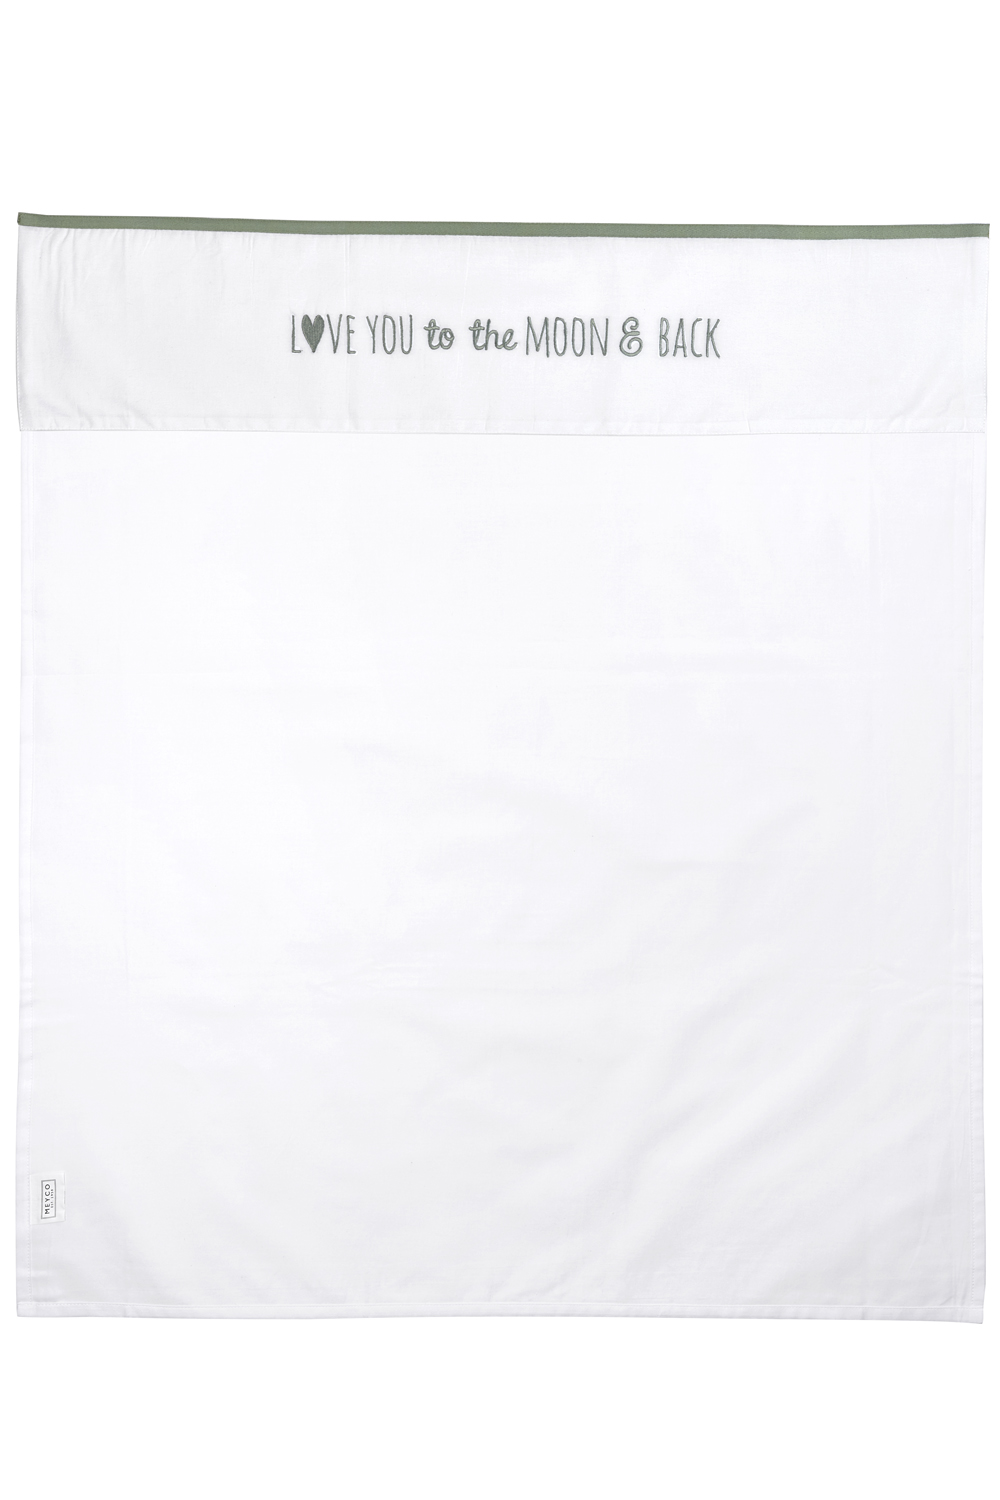 Wieglaken Love You To The Moon & Back - Forest Green - 75x100cm